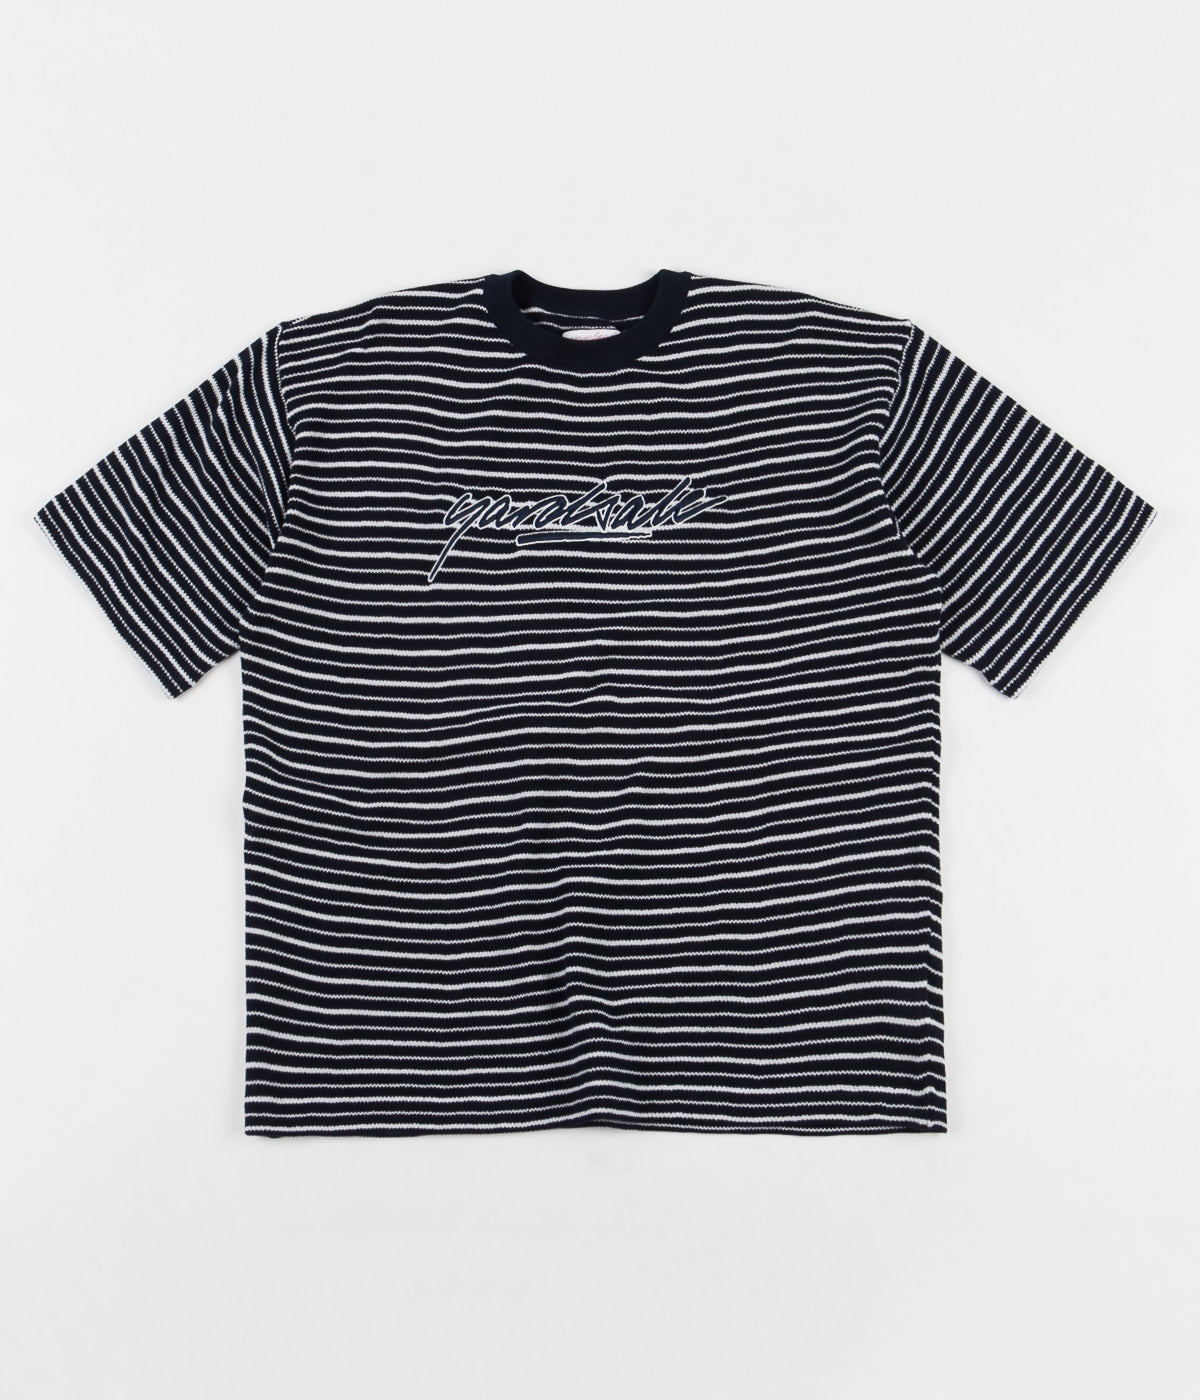 Yardsale Mobb Knitted Script T-Shirt - Navy / White